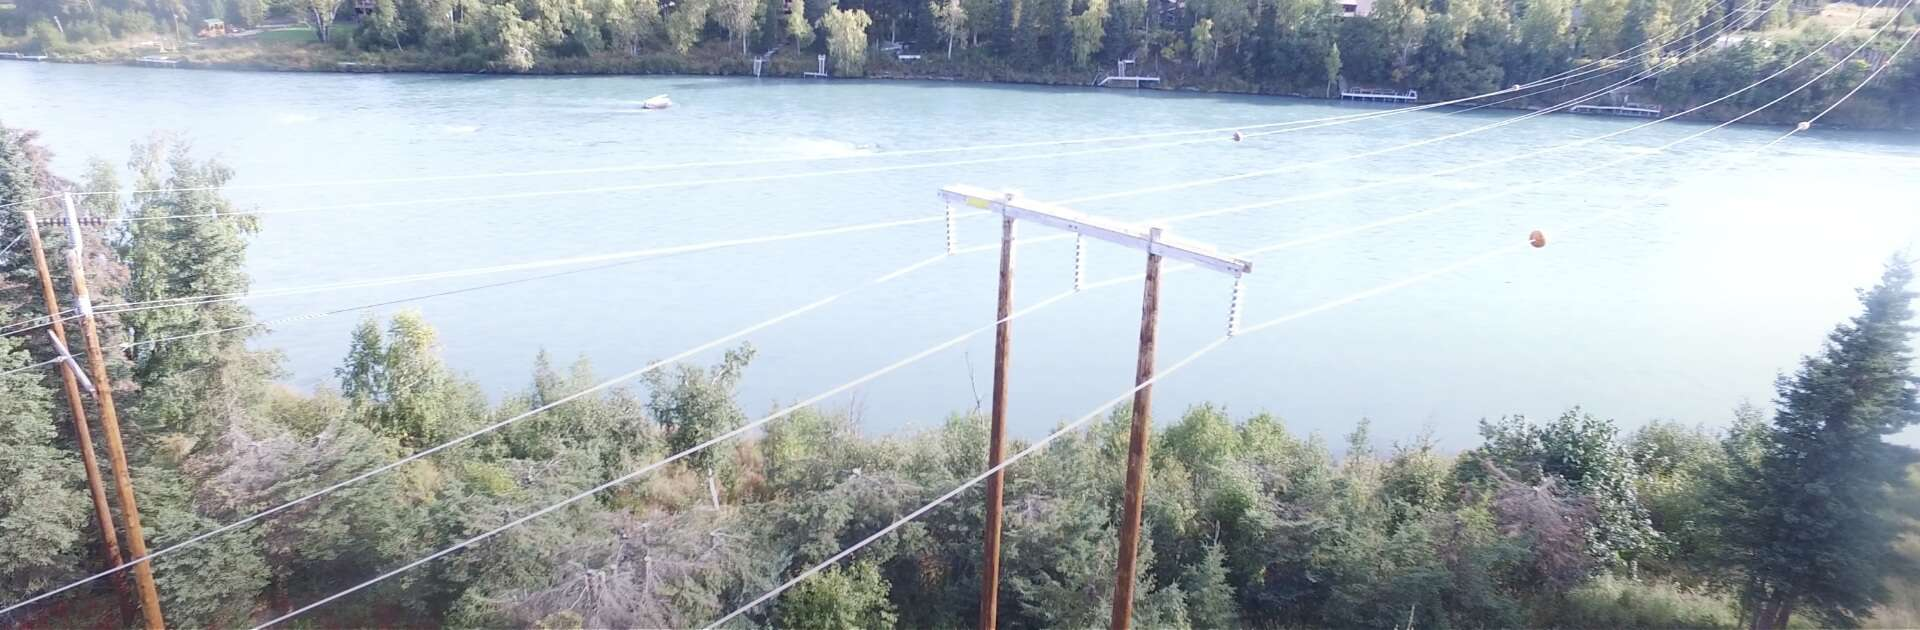 Overhead view of power lines above trees and body of water